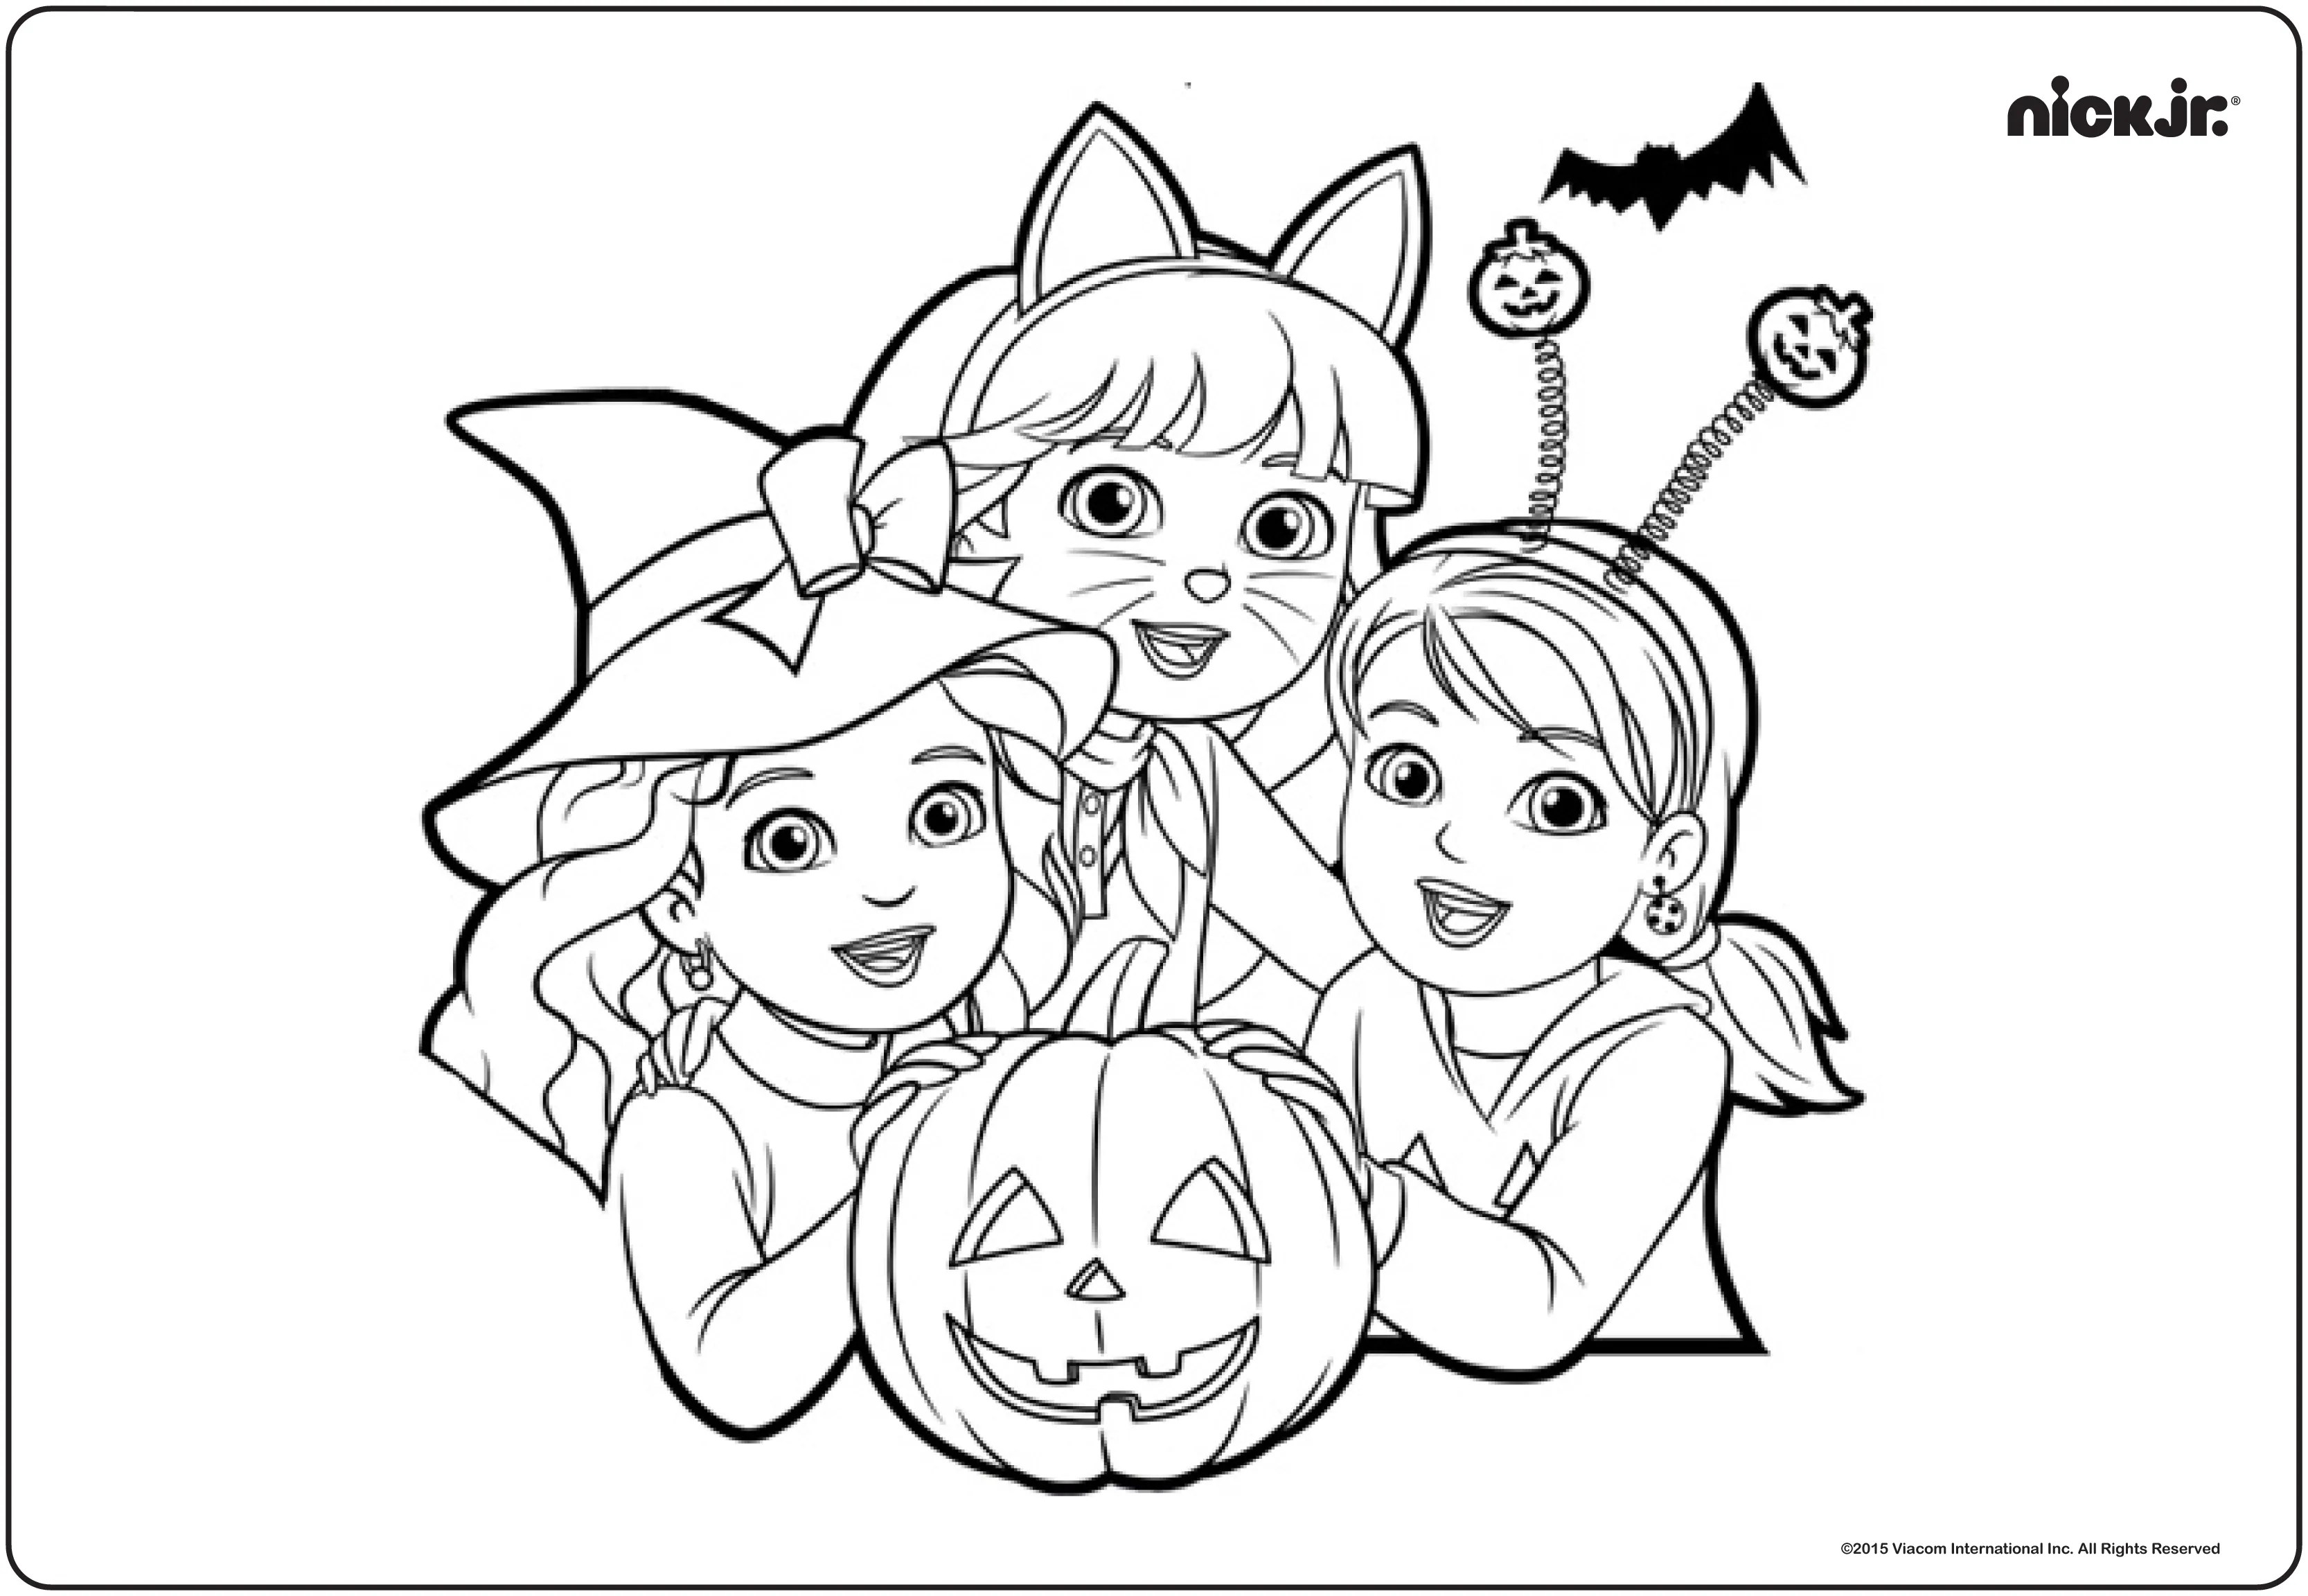 nickelodeon halloween coloring pages - photo#8